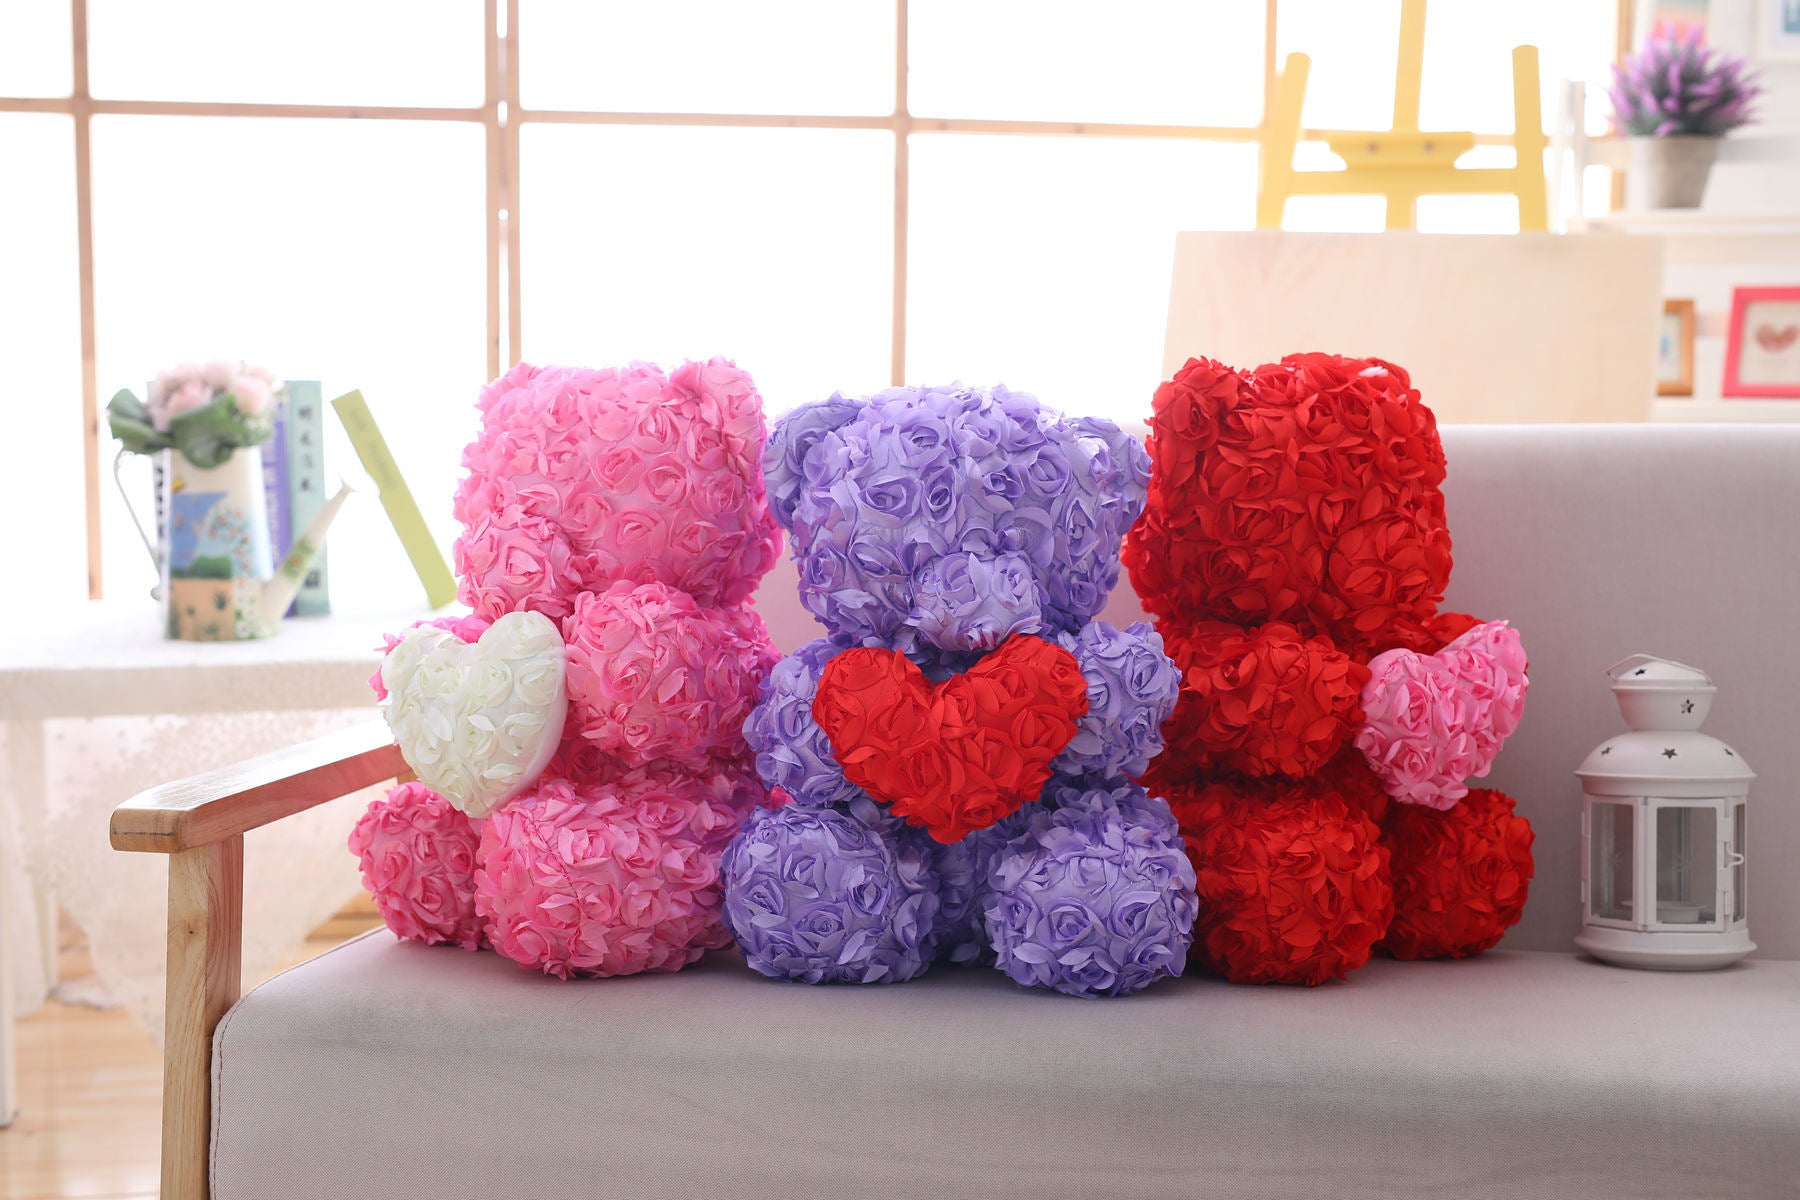 40cm Enchanted Forever Rose Heart Teddy Bear (5 Colors)